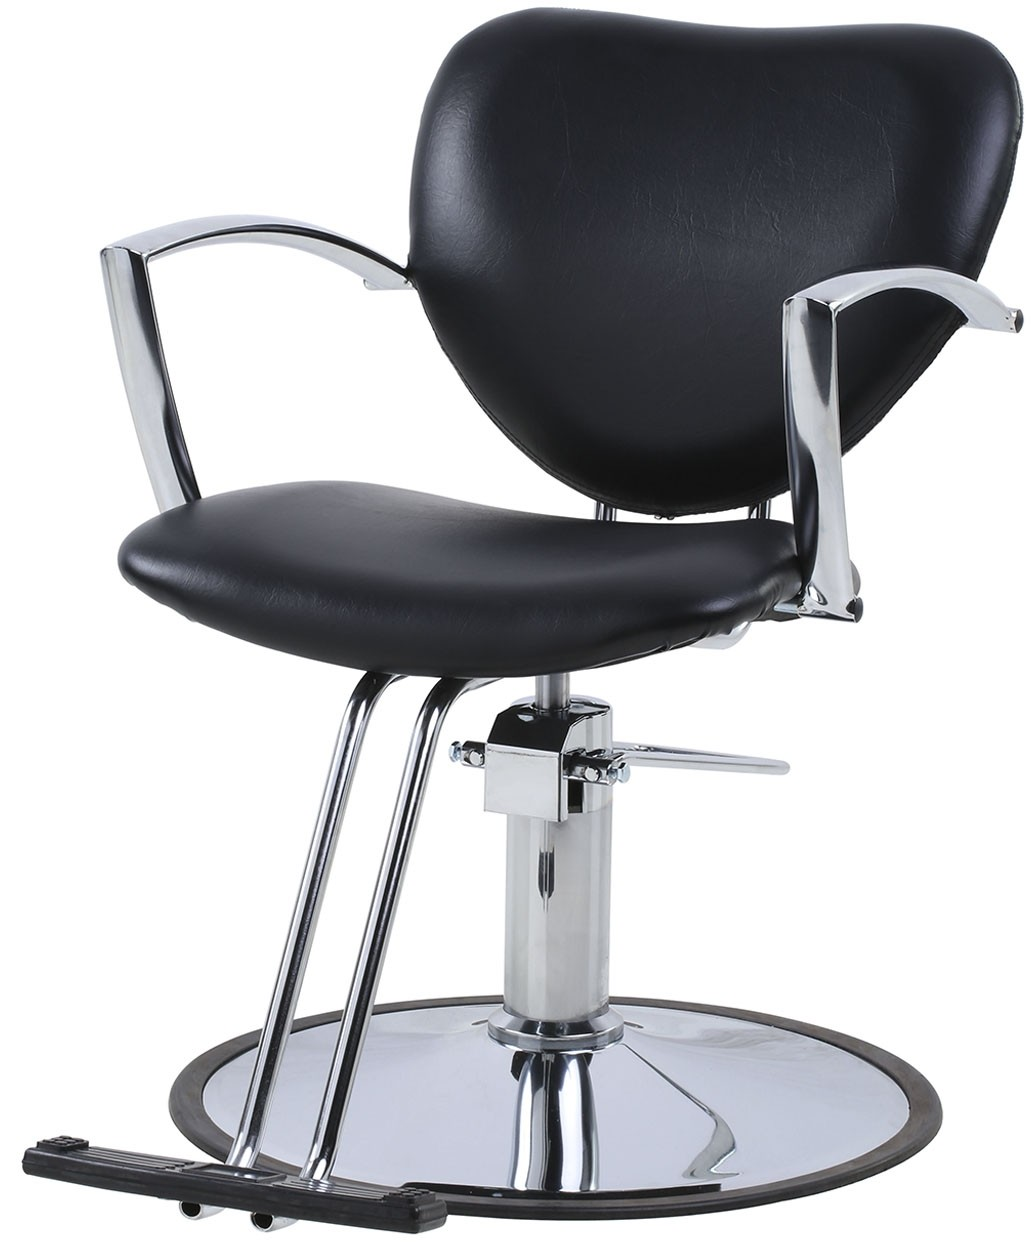 salon styling chair